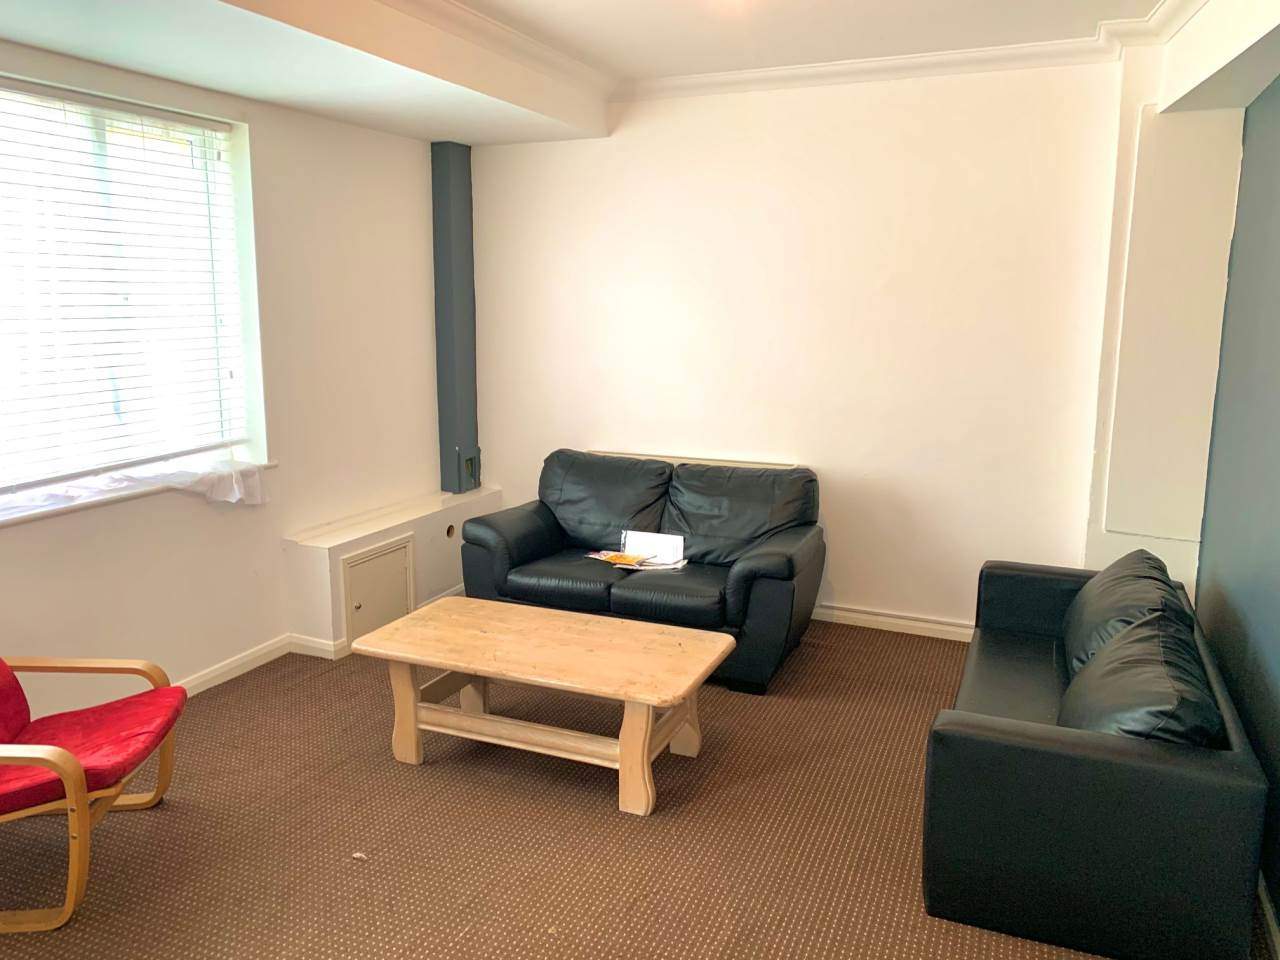 1 bed house / flat share to rent in 16 Upper Bevendean Avenue Brighton BN2 4FF  - Property Image 1